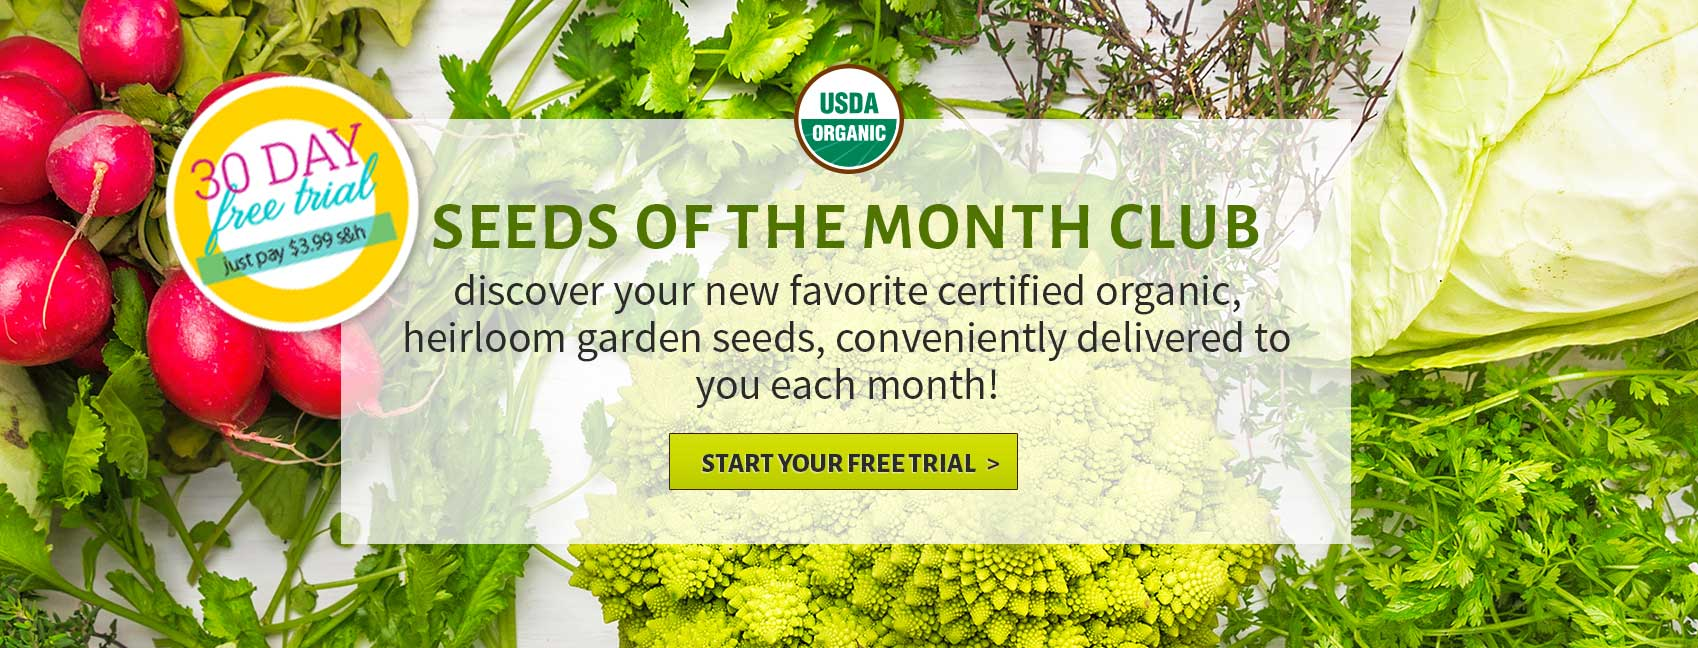 GrowJourney U2013 Seeds Of The Month Club U2013 We Make Organic Gardening Simple.  Certified Organic Heirloom Garden Seeds + Expert Organic Growing  Instructions ...